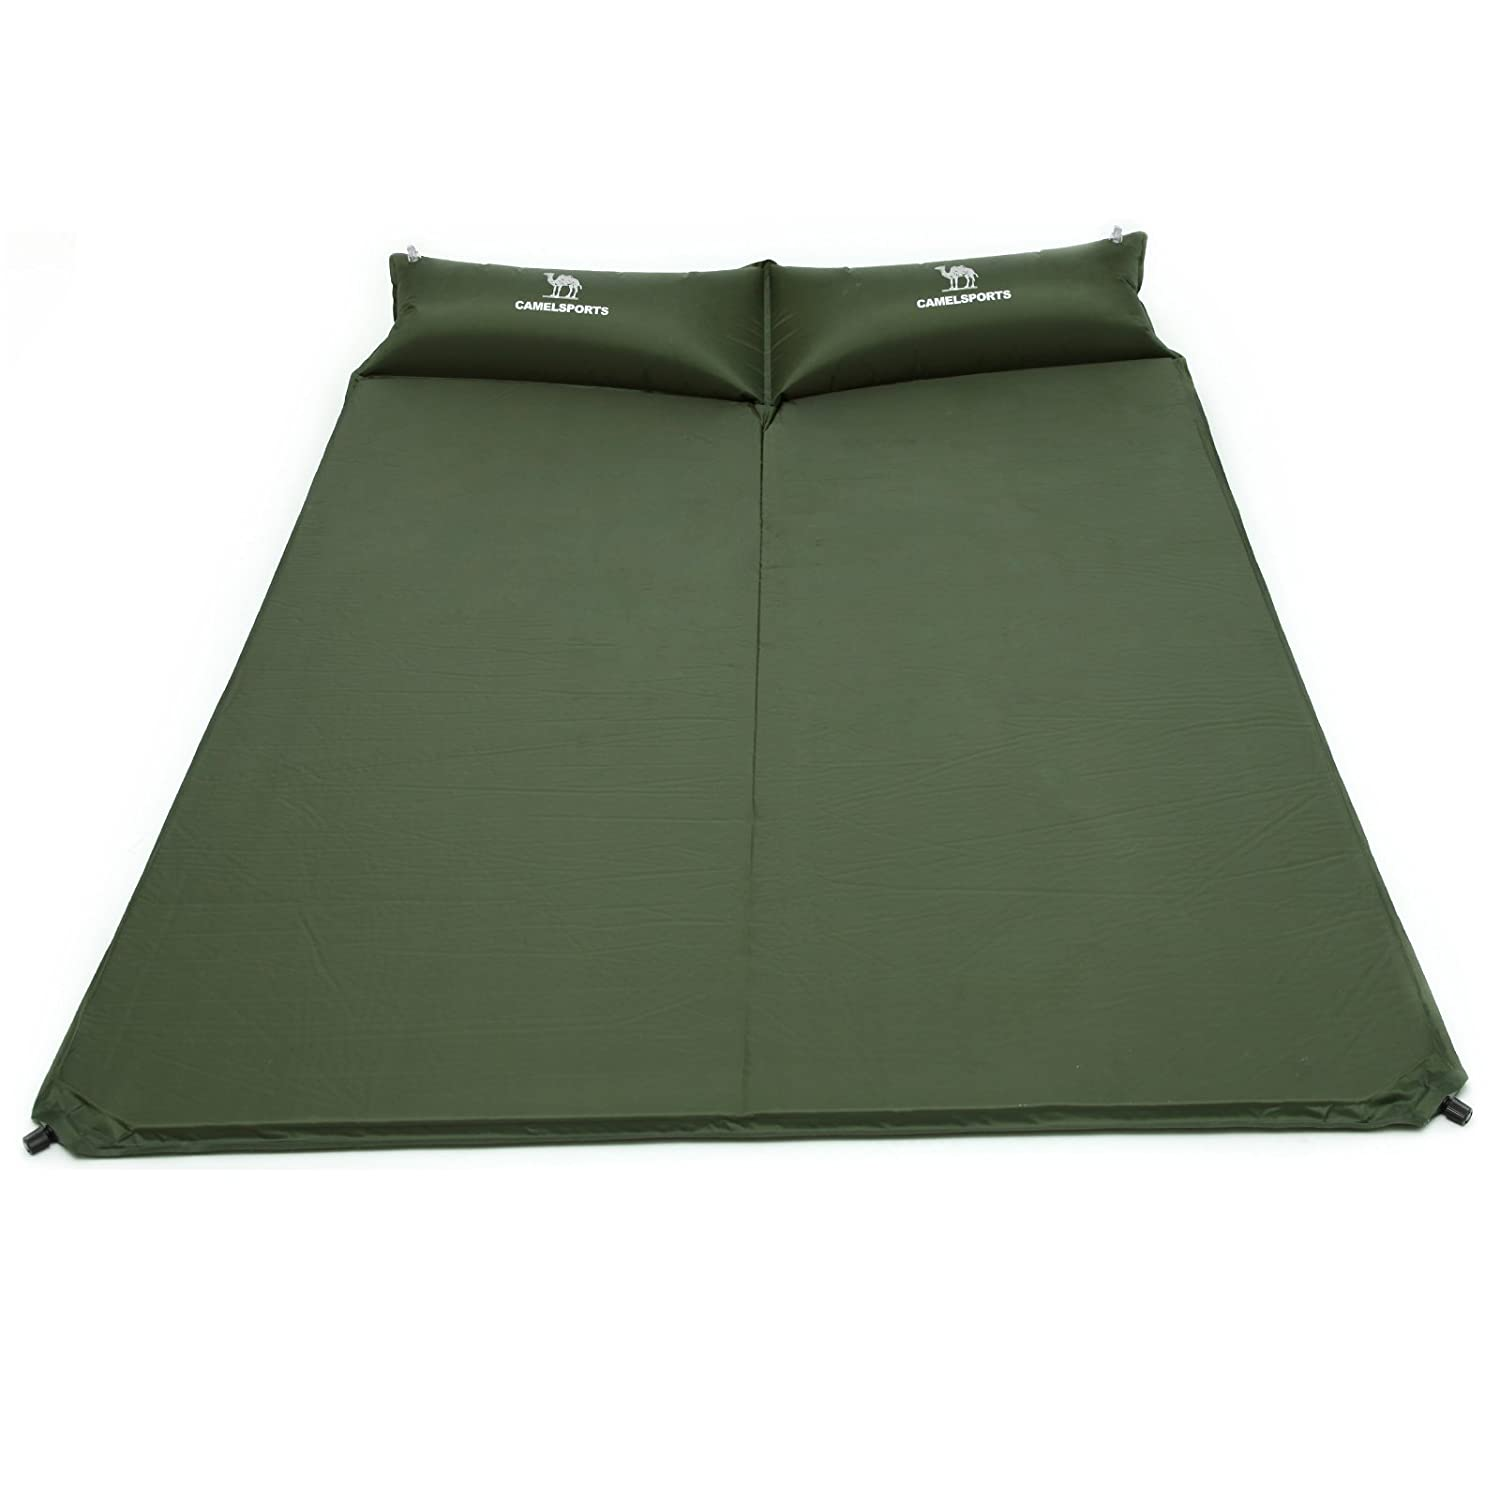 Camel Double Self-Inflating Sleeping Pad with Attached Pillow